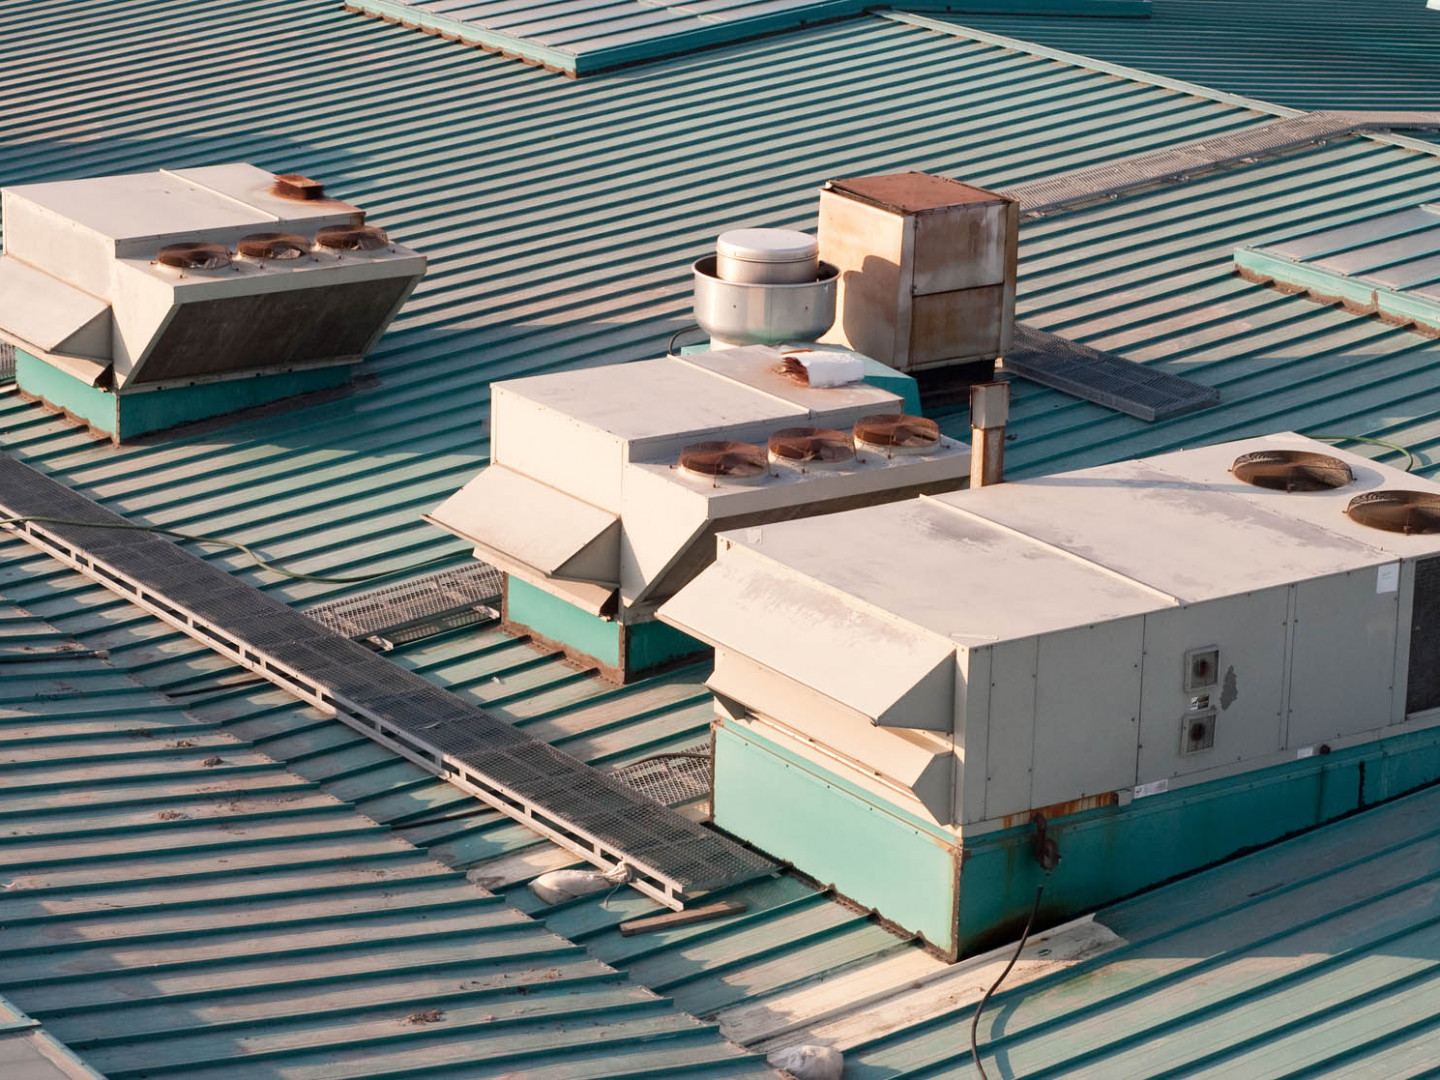 We work with all types of commercial roofing